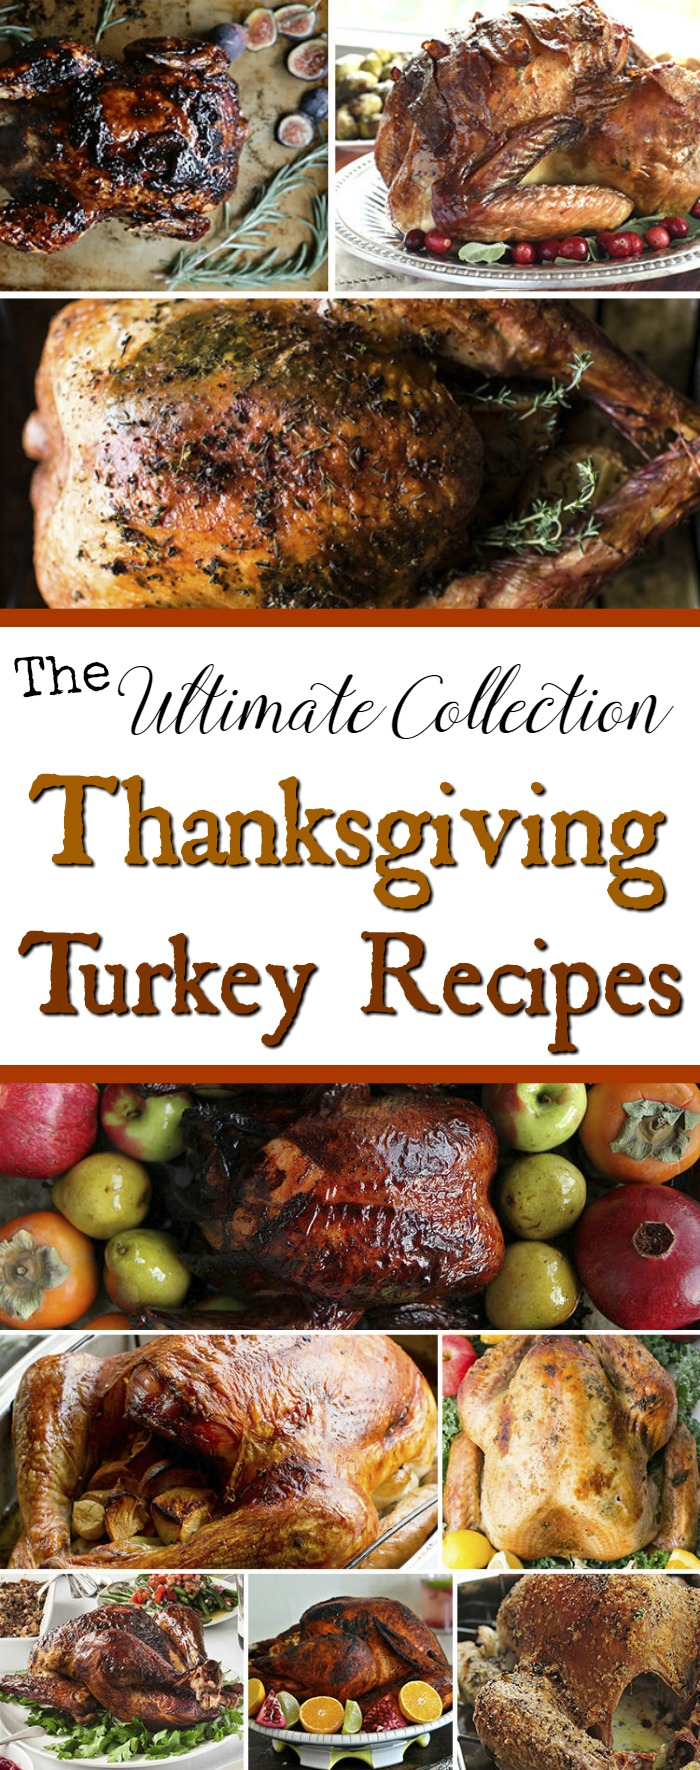 Thanksgiving Turkey Recipes Ultimate Collection